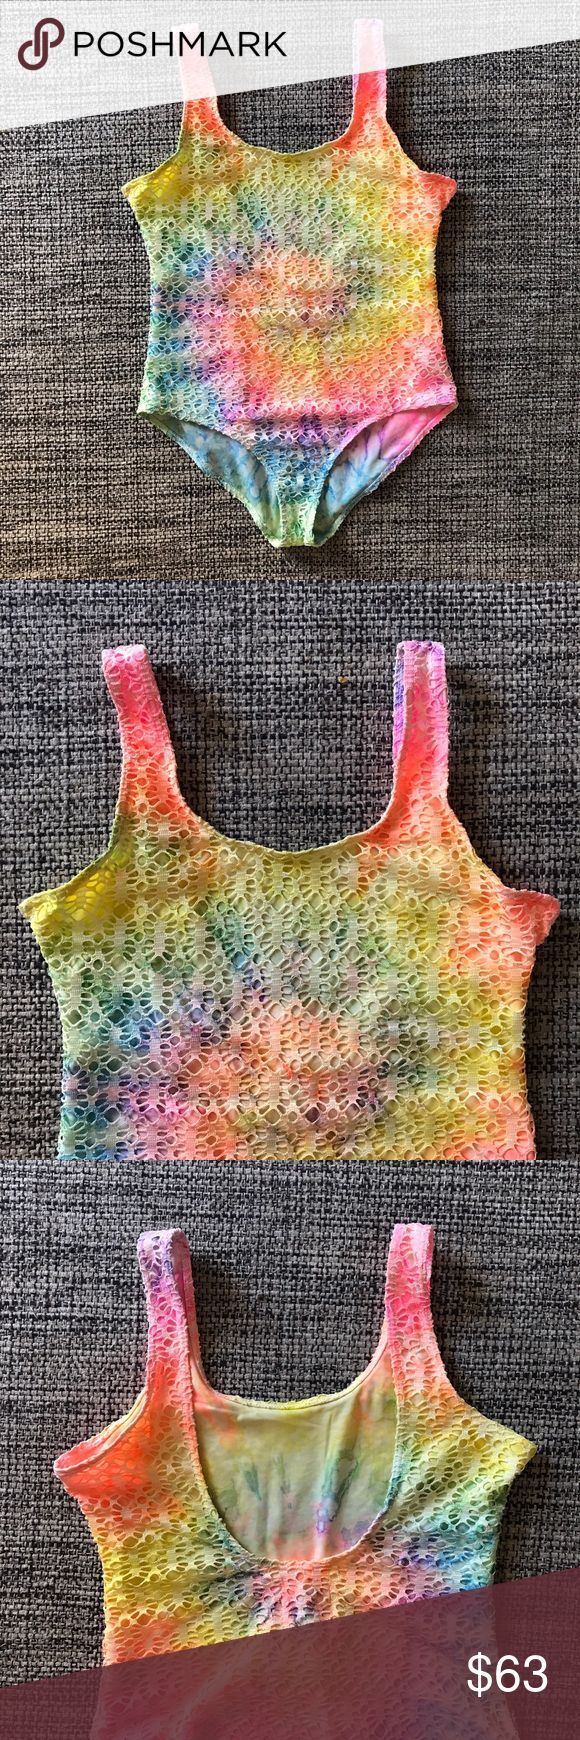 Unif Rainbow tie dye crochet bathing suit M UNIF Rainbow Tie Dye Crochet Knitted One Piece Swimsuit Swimwear size M but the torso area is really small so I only recommend for people that are shorter or have a short torso area or XS/S UNIF Swim One Pieces